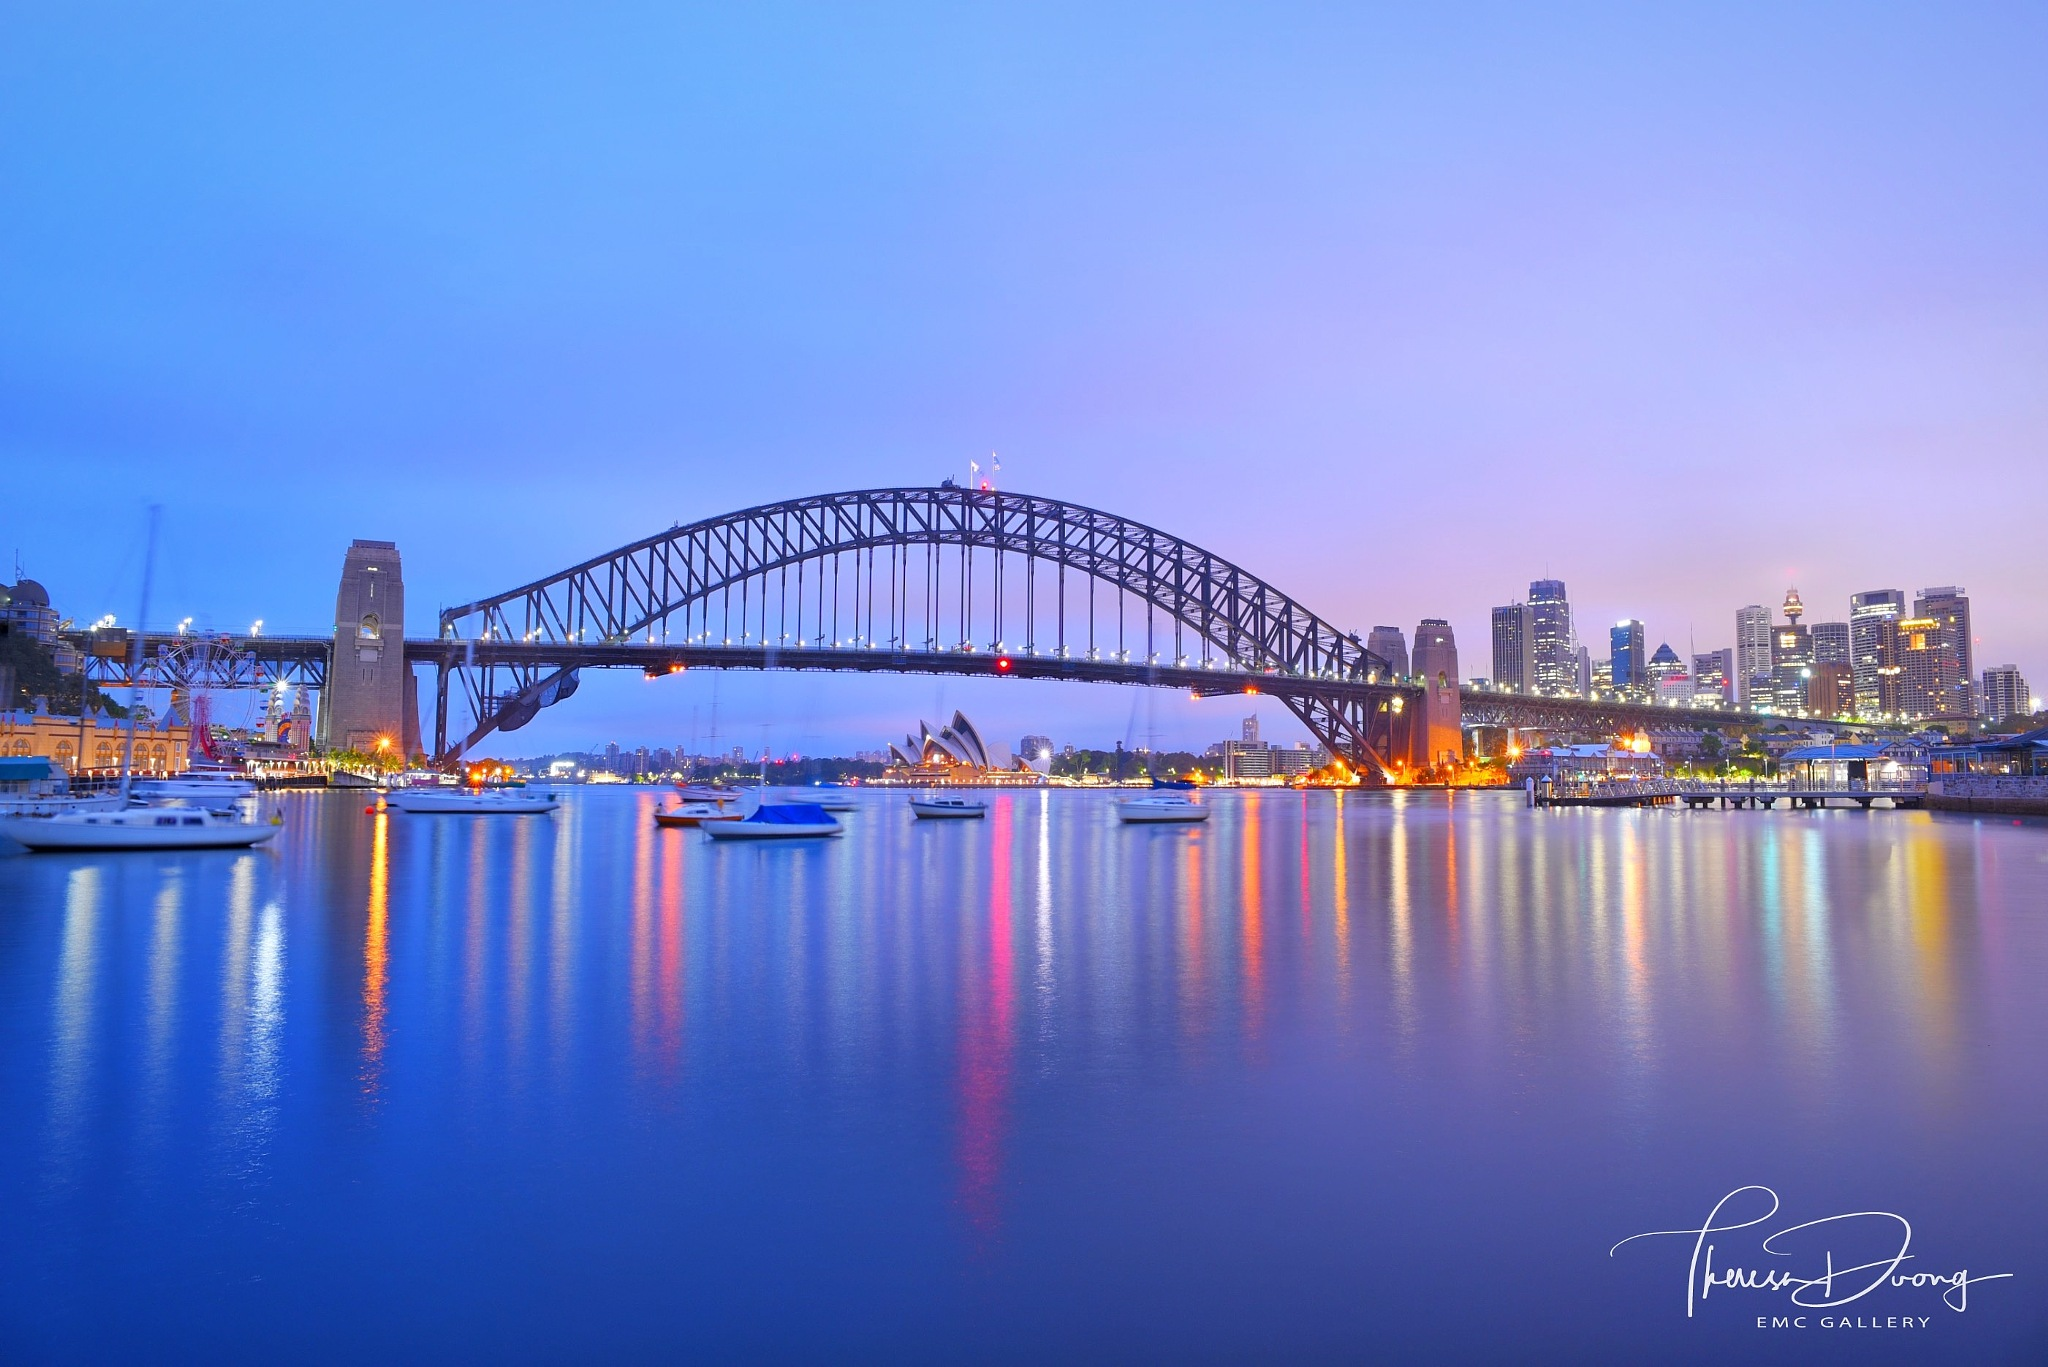 Reflecting on Sydney by Theresa Duong